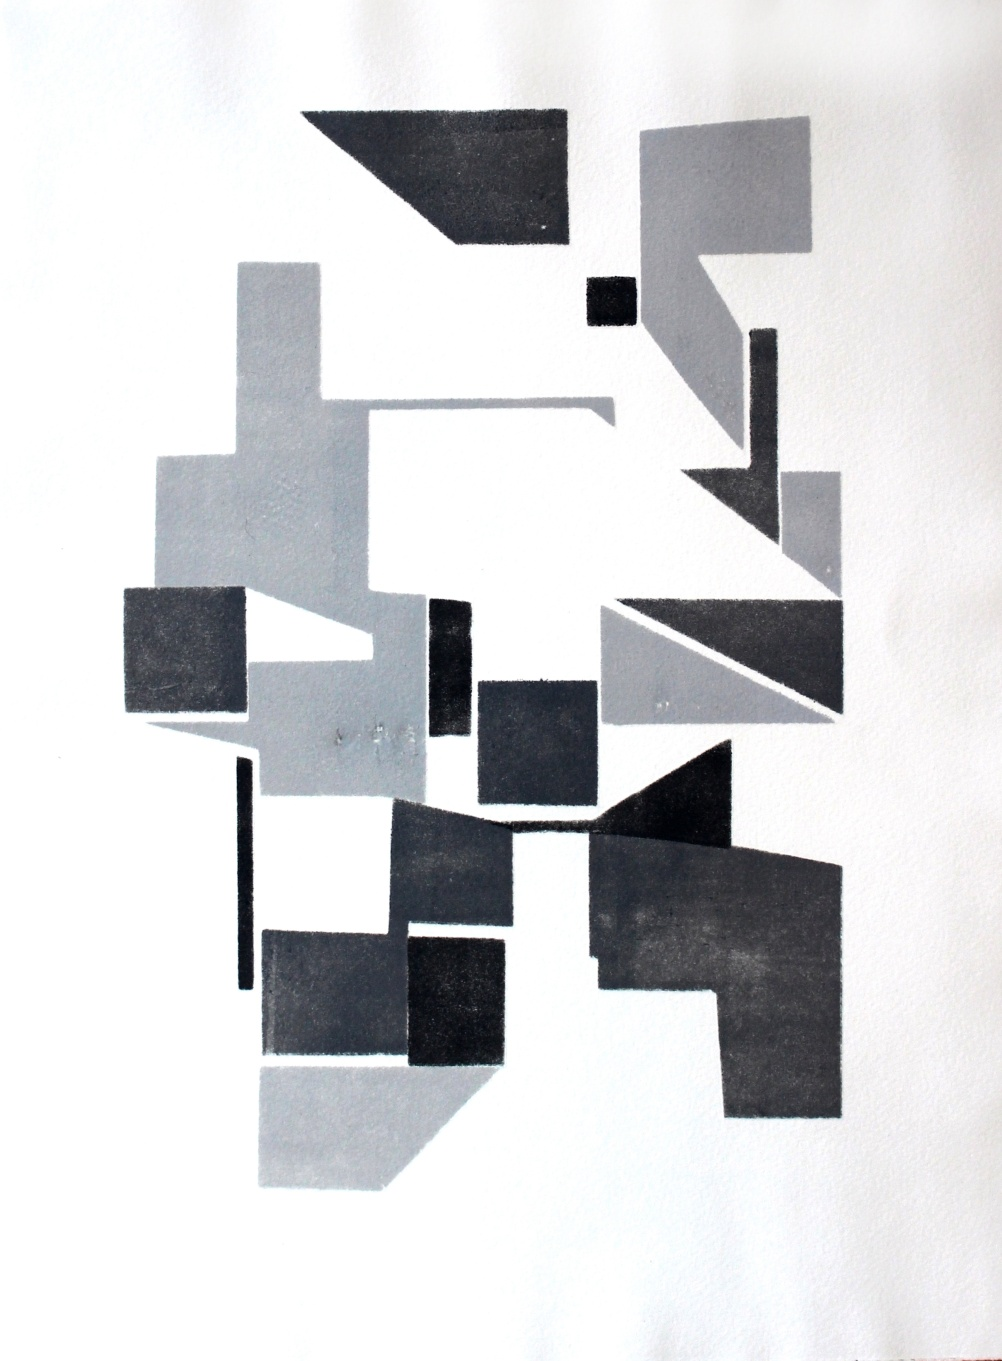 Some of Lachlan's previous work - from The Modulors series, Untitled (units), stencil monoprint